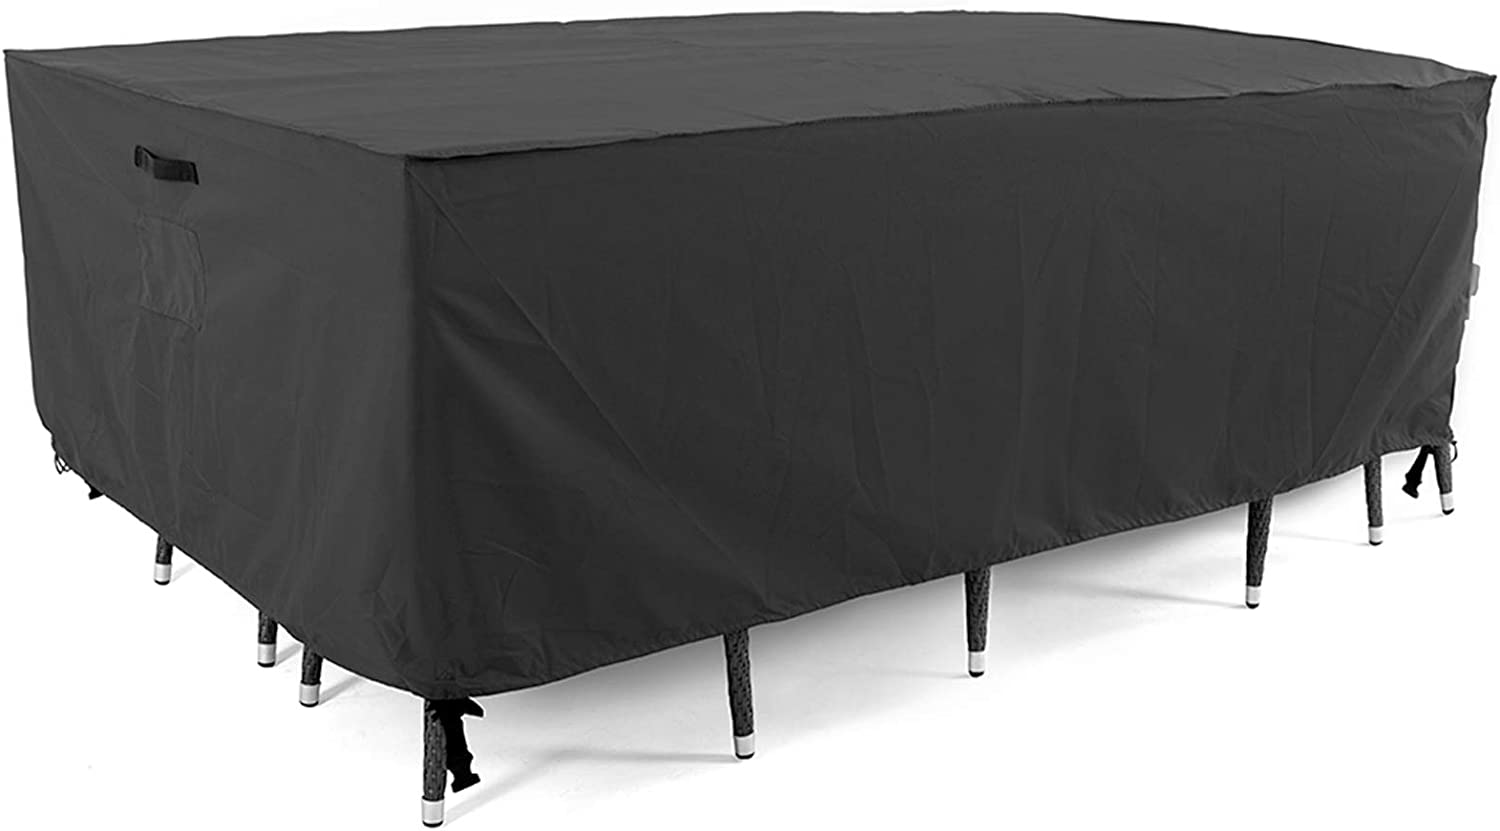 Tempera Patio Furniture Cover, Waterproof, Tear-Resistant, UV Resistant Outdoor Table, Sofa, Sectional Cover, Space Grey, 62x42 inches